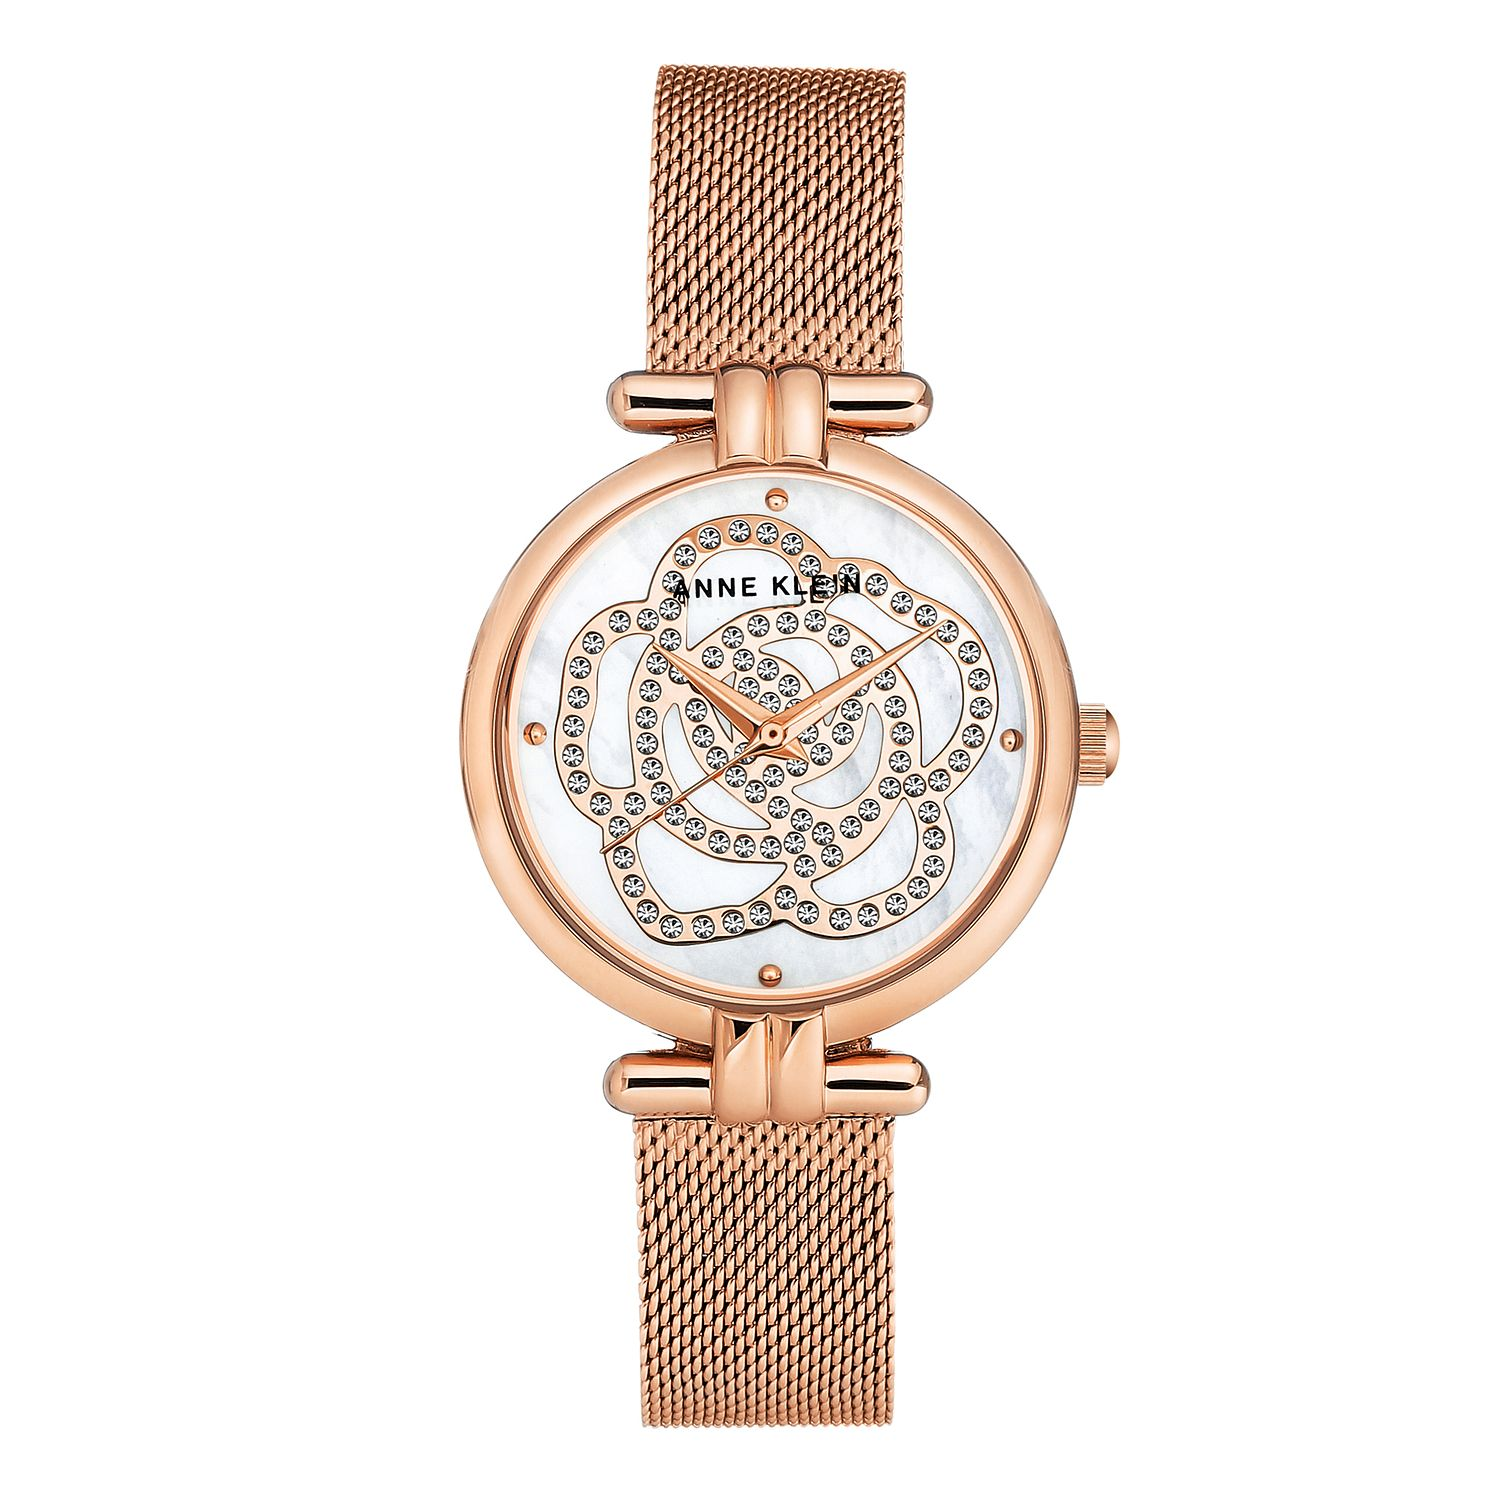 Anne Klein Ladies' Rose Gold Tone Mesh Bracelet Watch - Product number 8891389